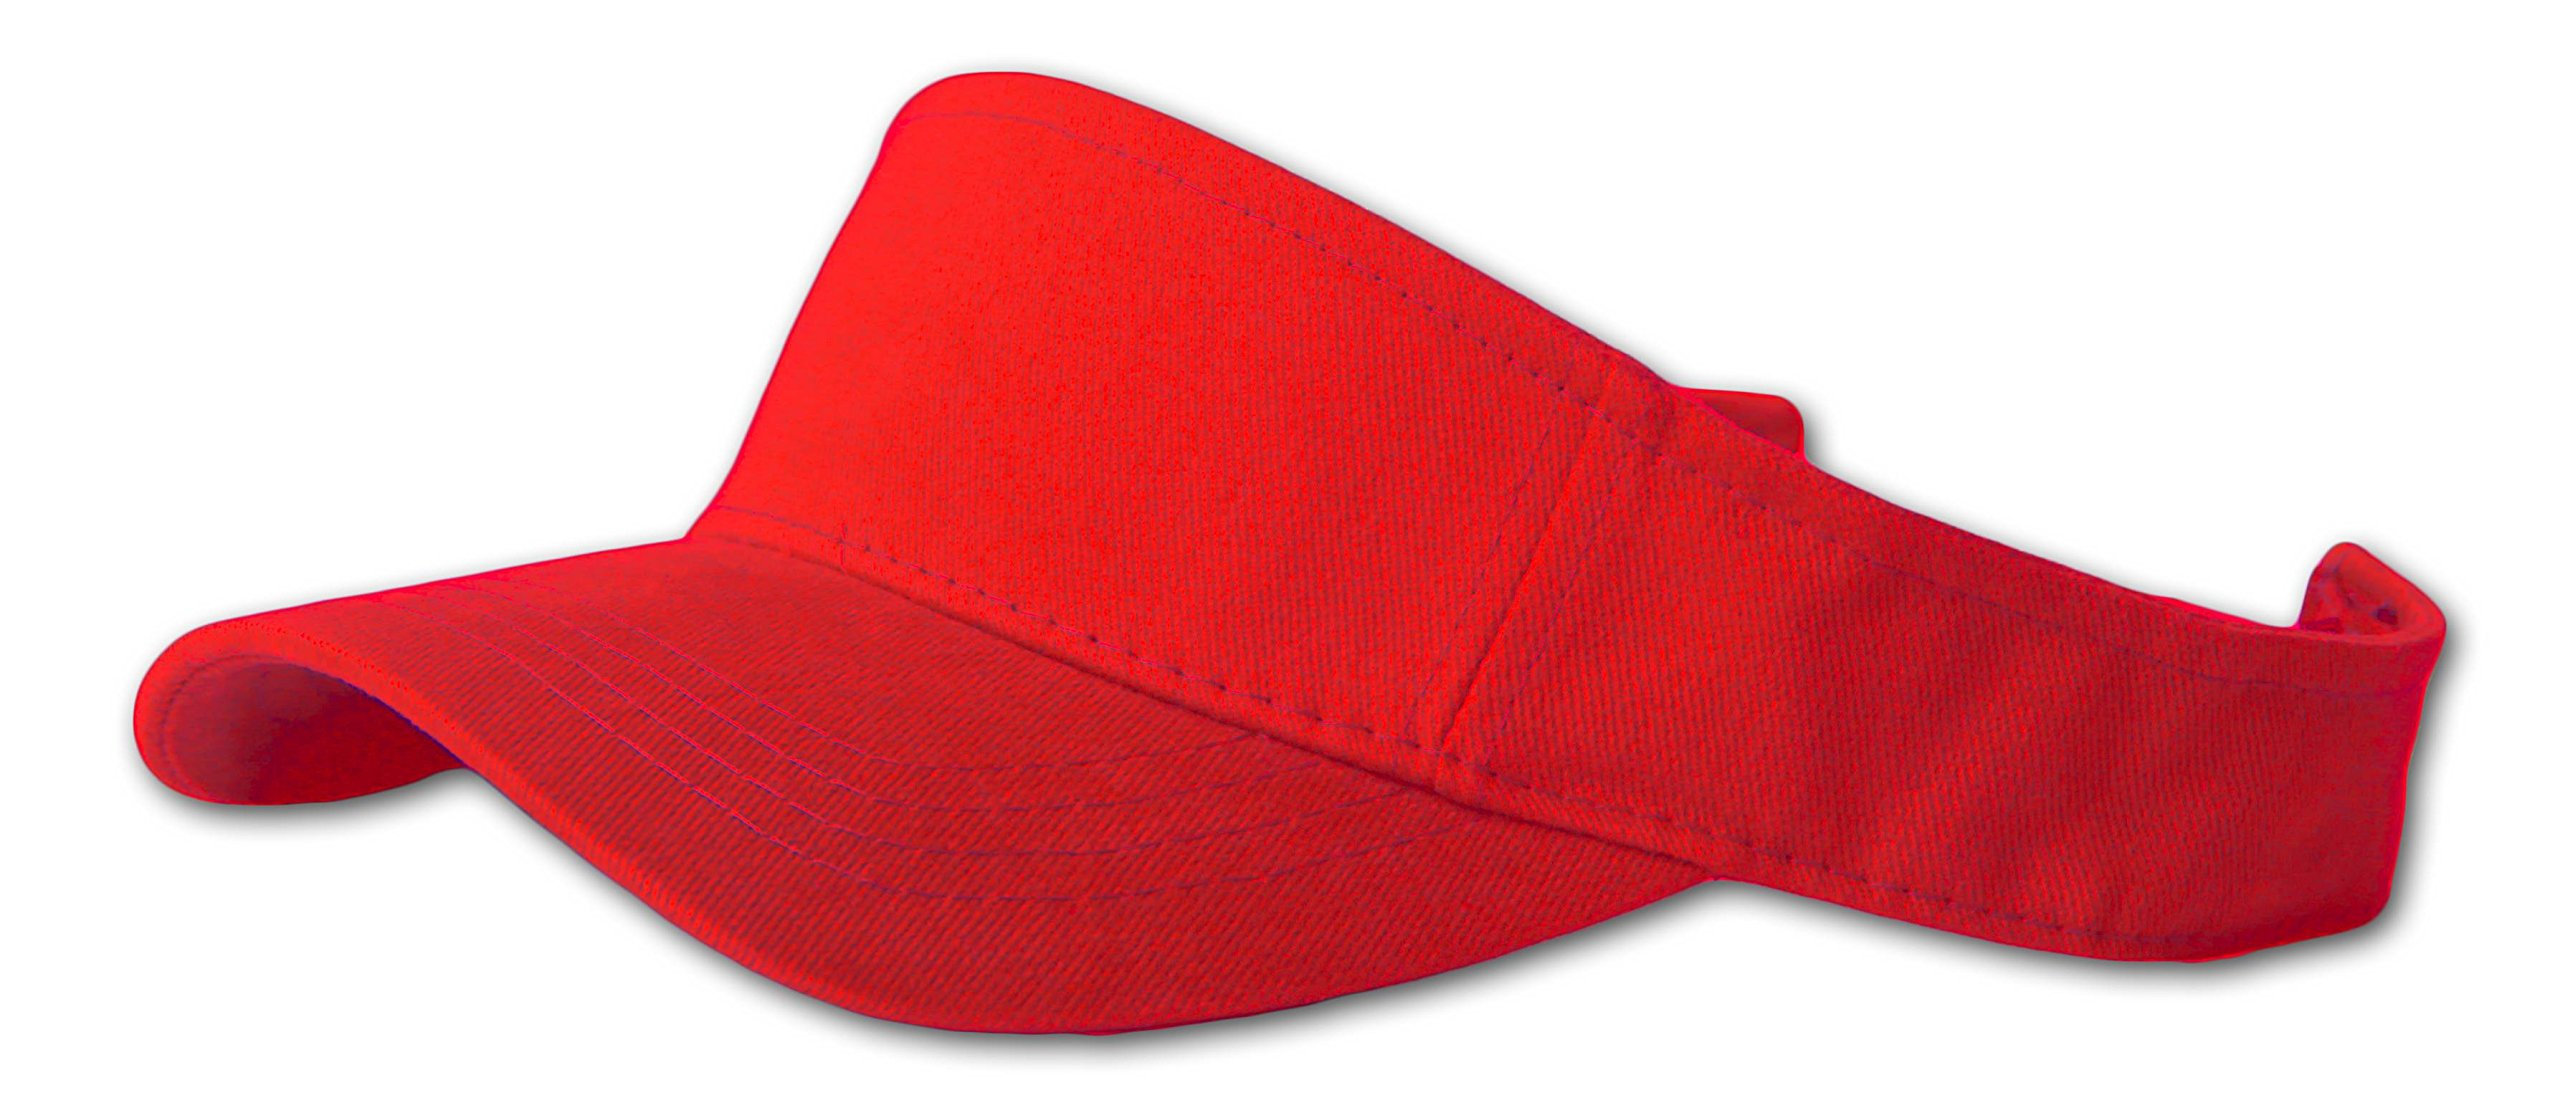 12 Lot (One Color) Visor Caps- Red